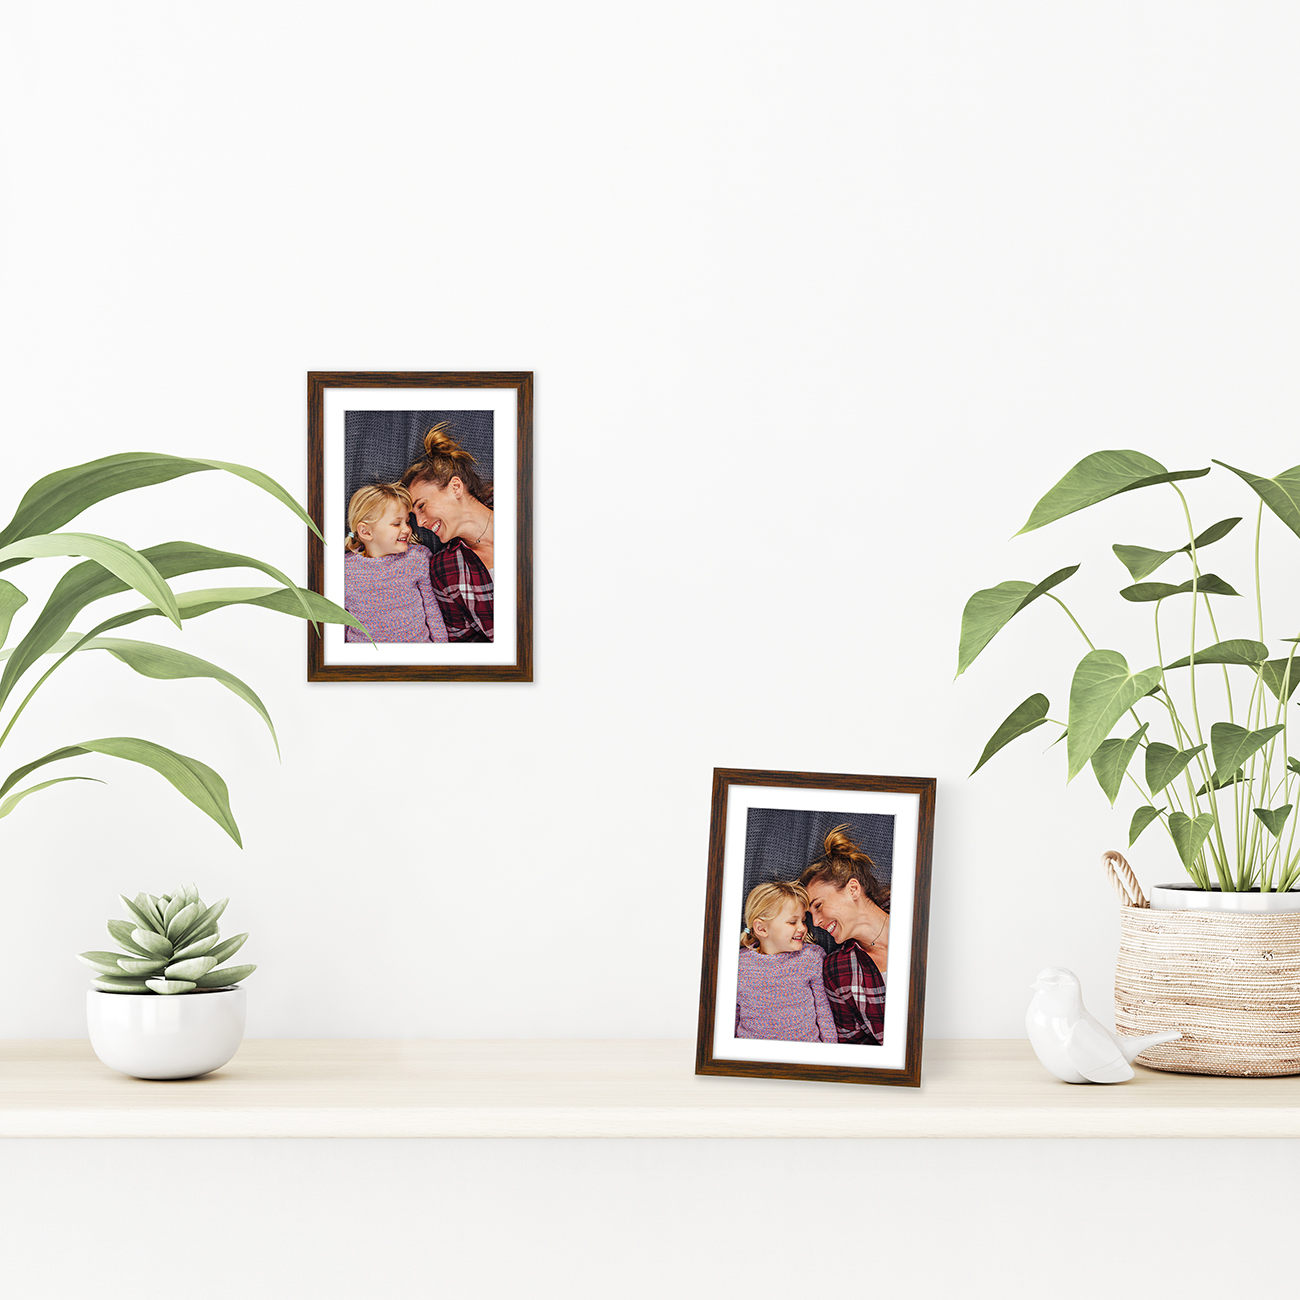 miniature 54 - Americanflat Thin Picture Frame 5x7 8x10 11x14 8.5x11 Wall Tabletop Pick Color